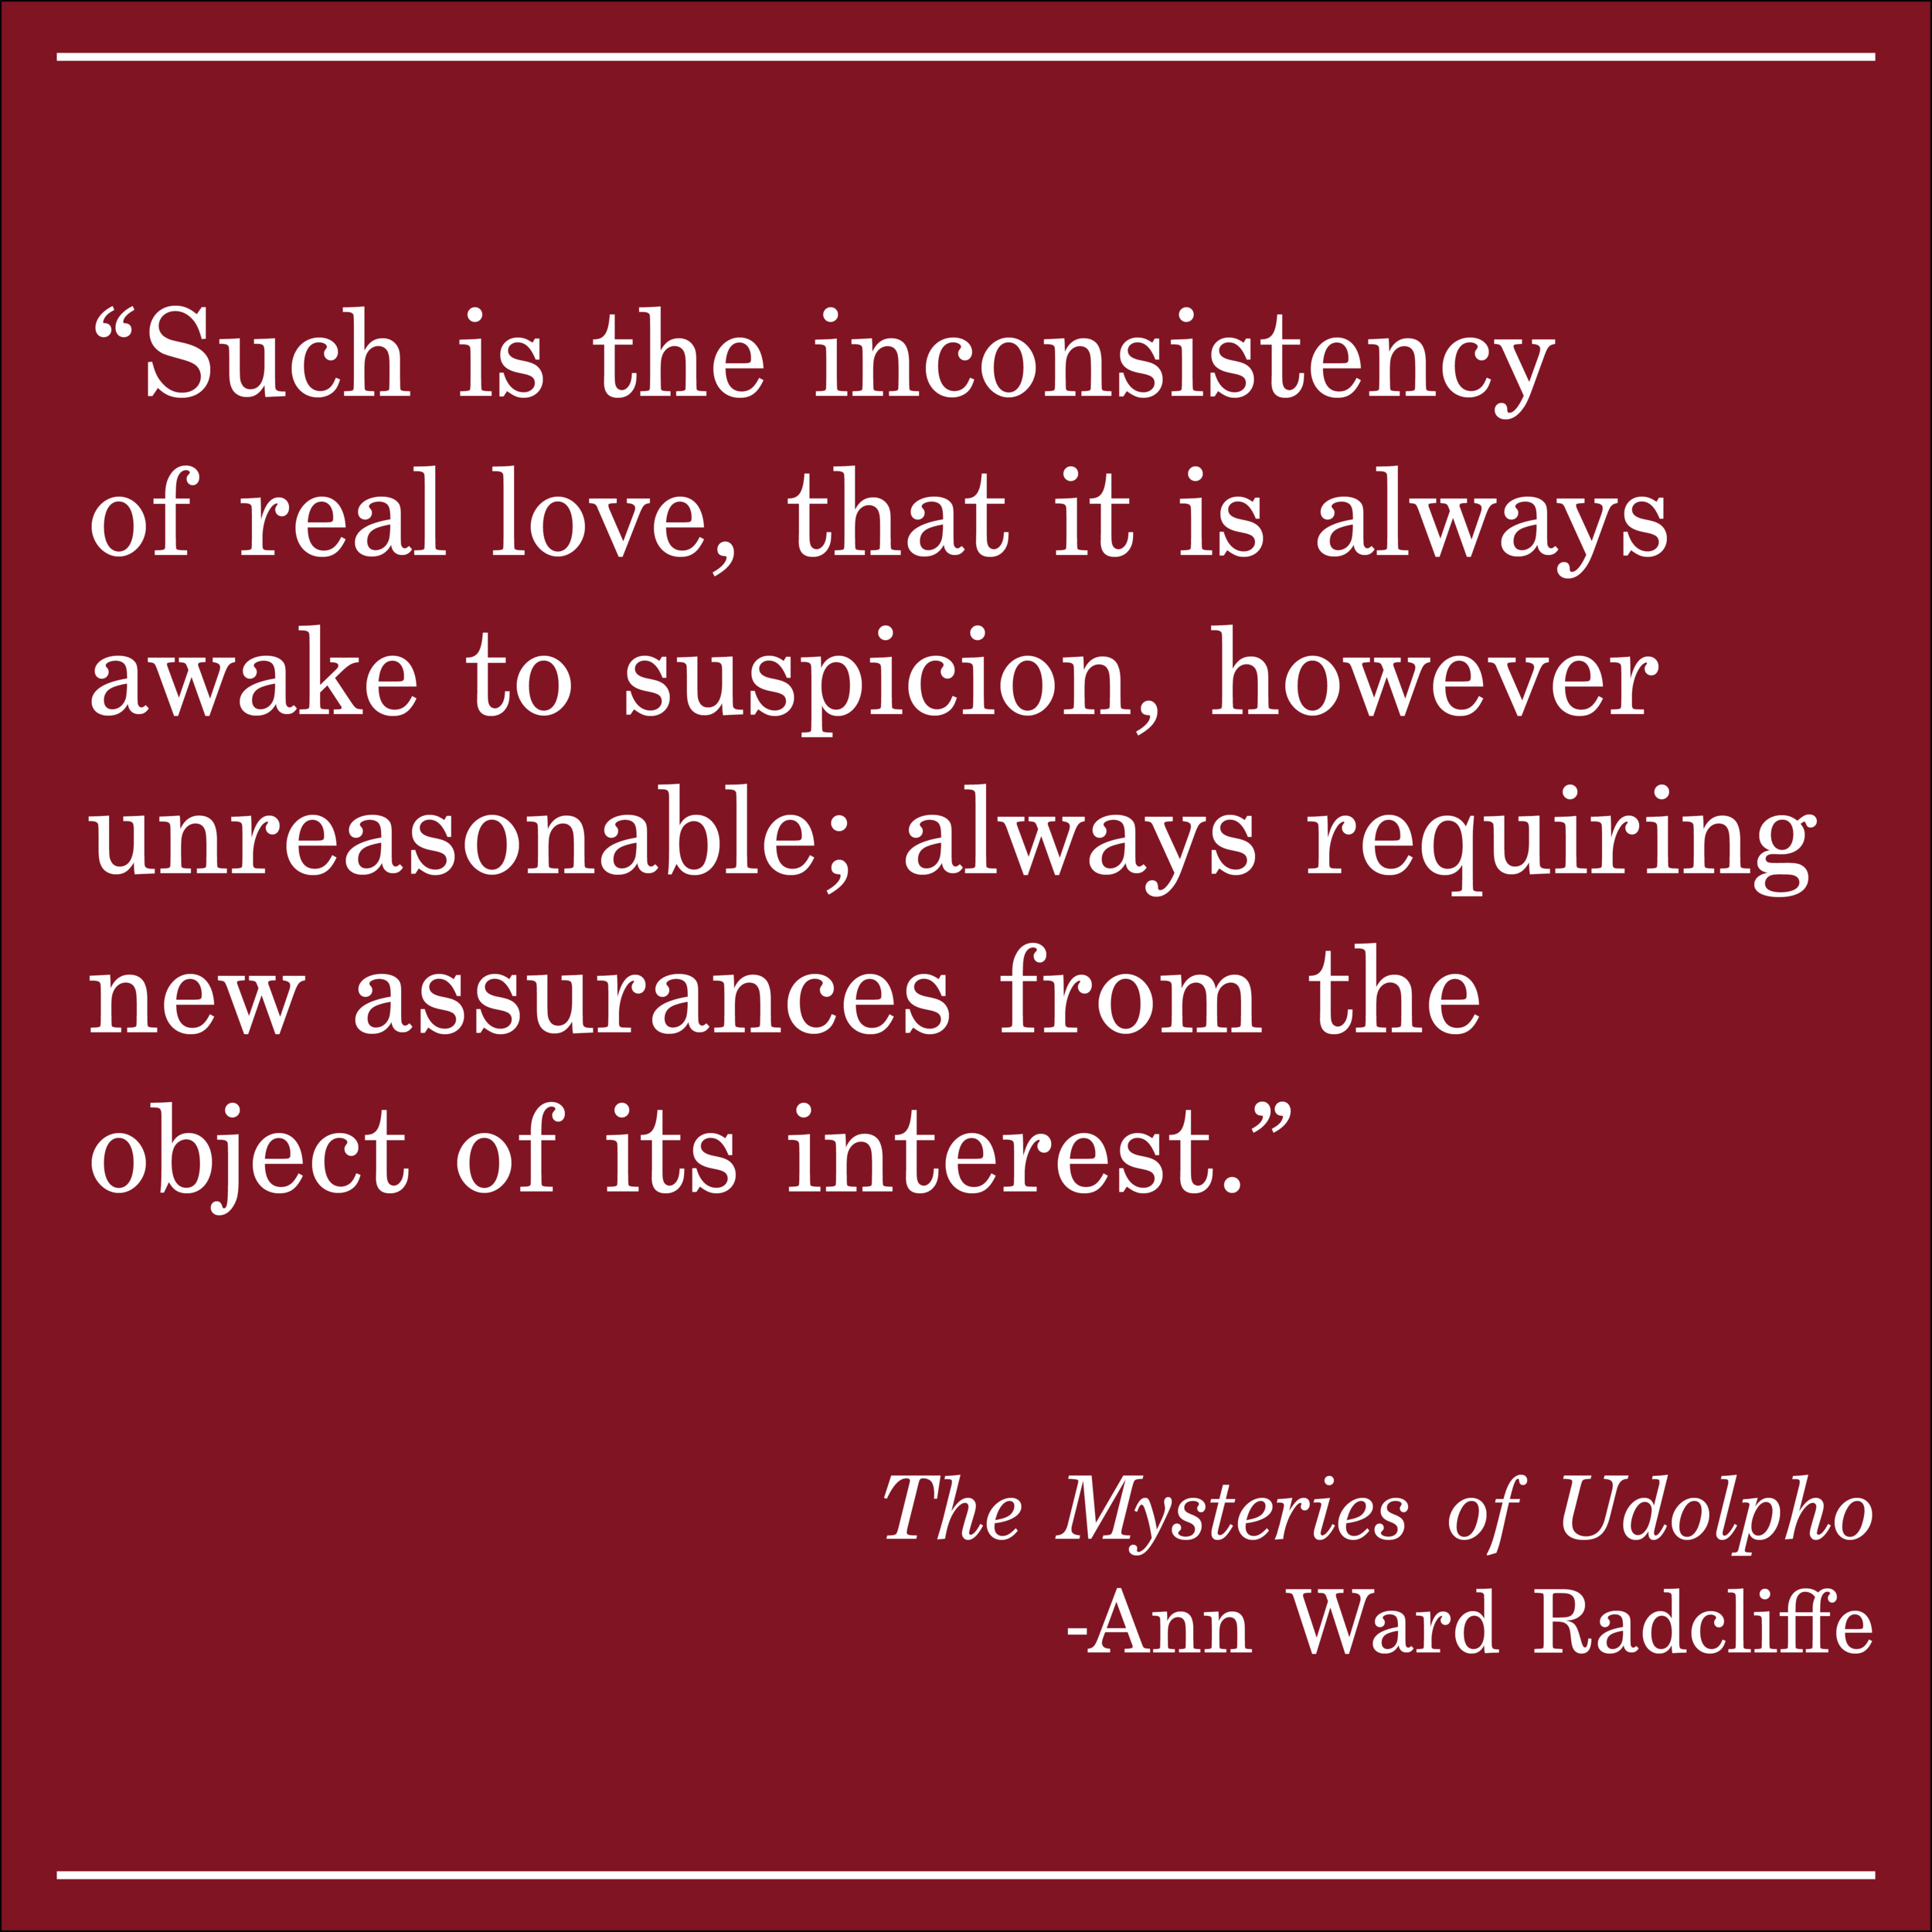 Daily Quote The Mysteries of Udolpho by Ann Ward Radcliffe